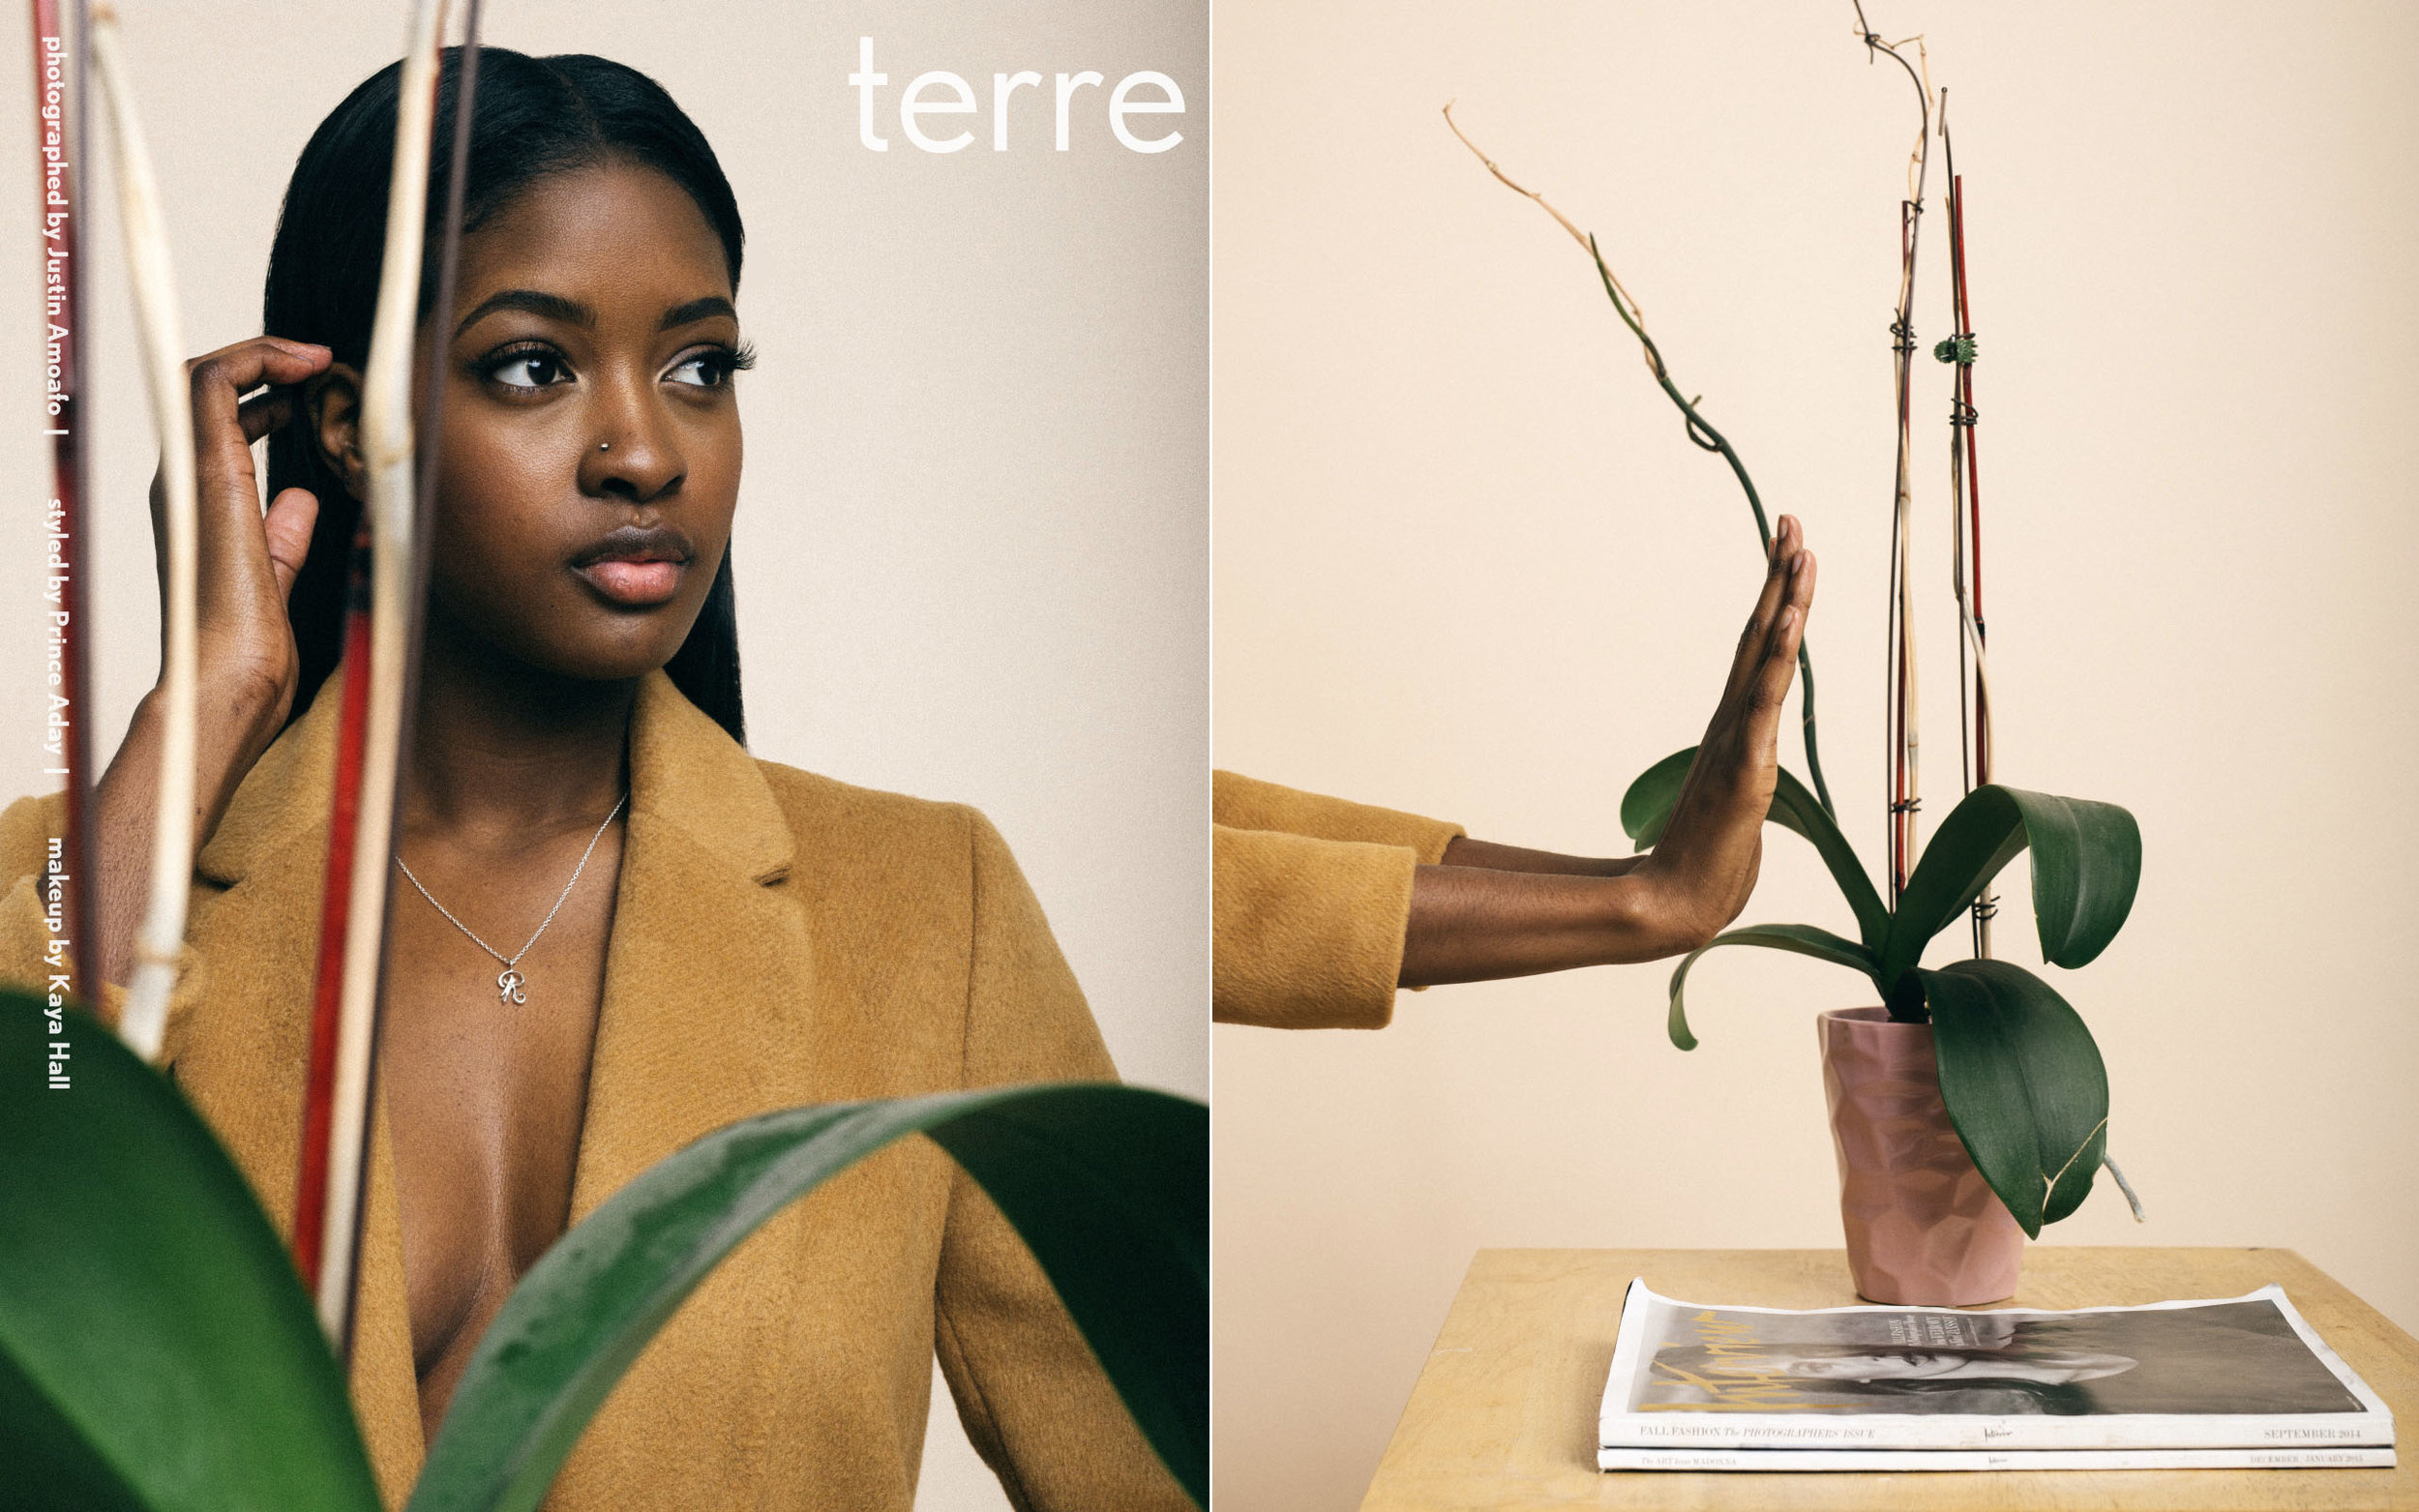 Terre  featuring Sira P. Kanté